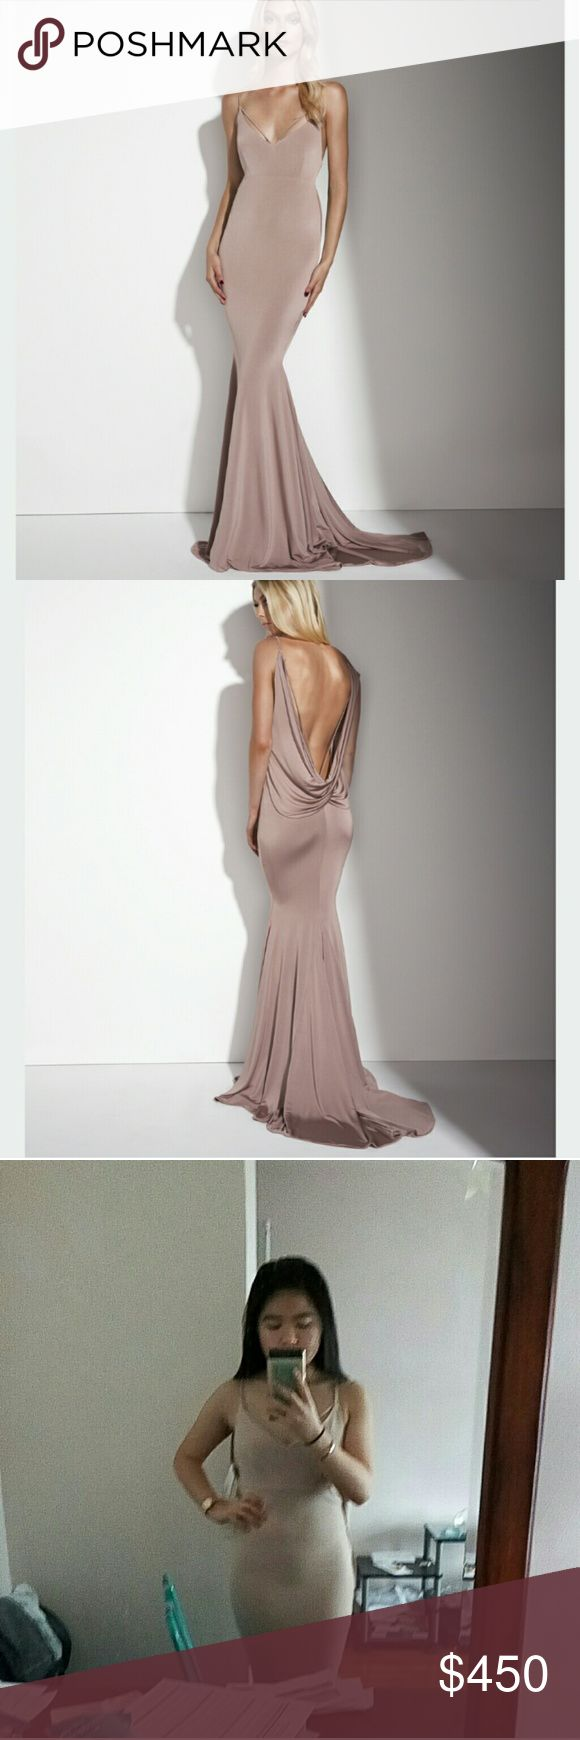 Gemeli Power nude Evgeni Dress Authentic and NWT Size 2 US / 6 AUS  Not Sherri Hill brand Is Gemeli Power brand Open cowl back  Stretchy fabric Wear to prom or any other special occasion! Original price of $850!!! Will negotiate price on M ercari Sherri Hill Dresses Prom